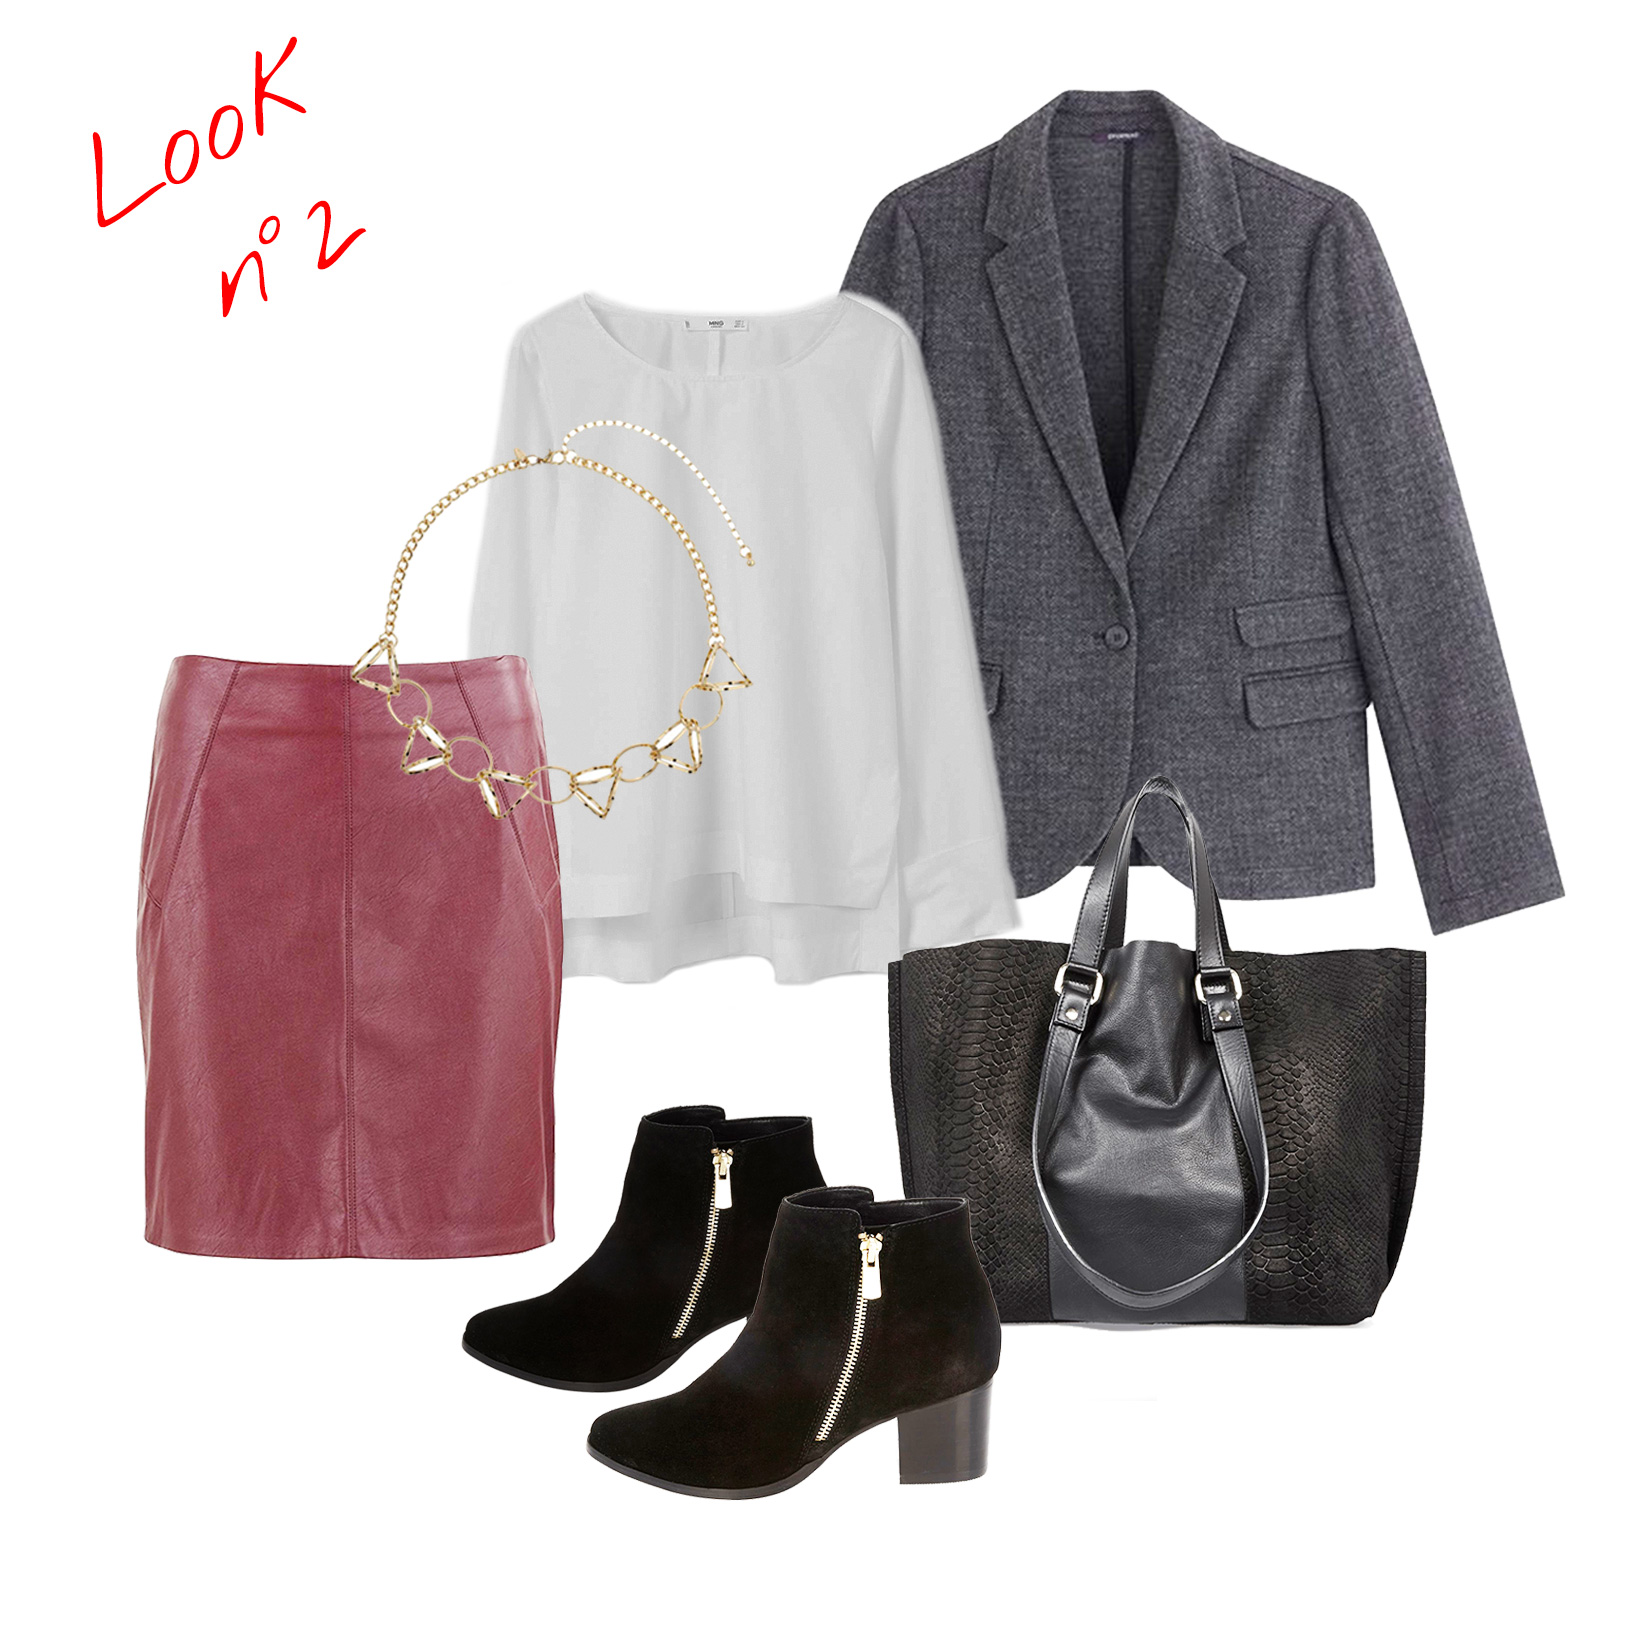 Composition du look n°2